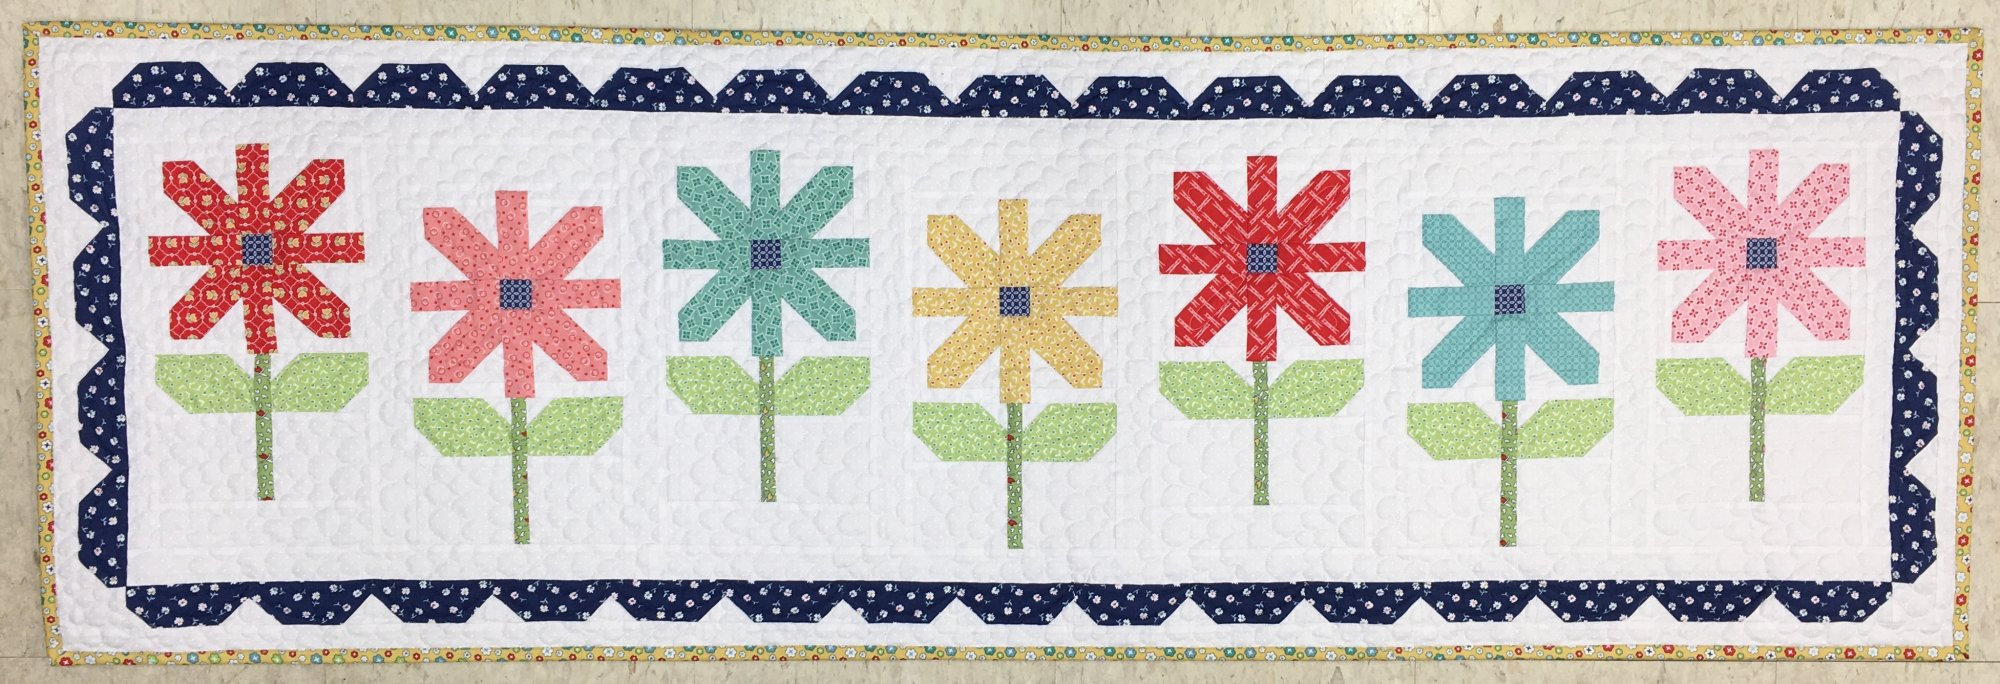 Happy Flowers Table Runner 21-1/2 x 65-1/2 From the Quilter's Cottage Book